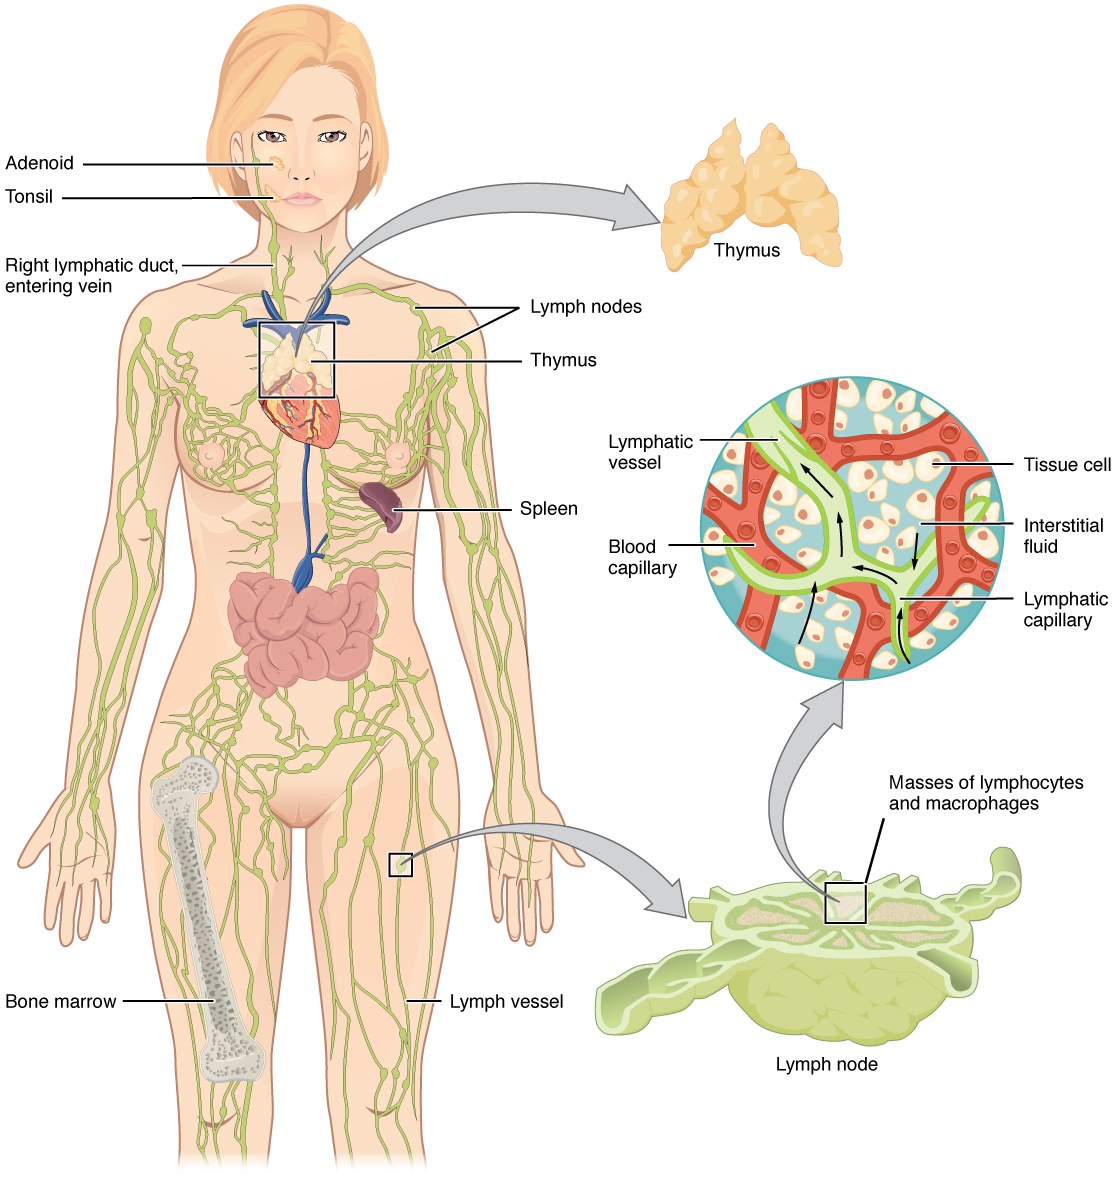 21 1 Anatomy of the Lymphatic and Immune Systems – Anatomy and